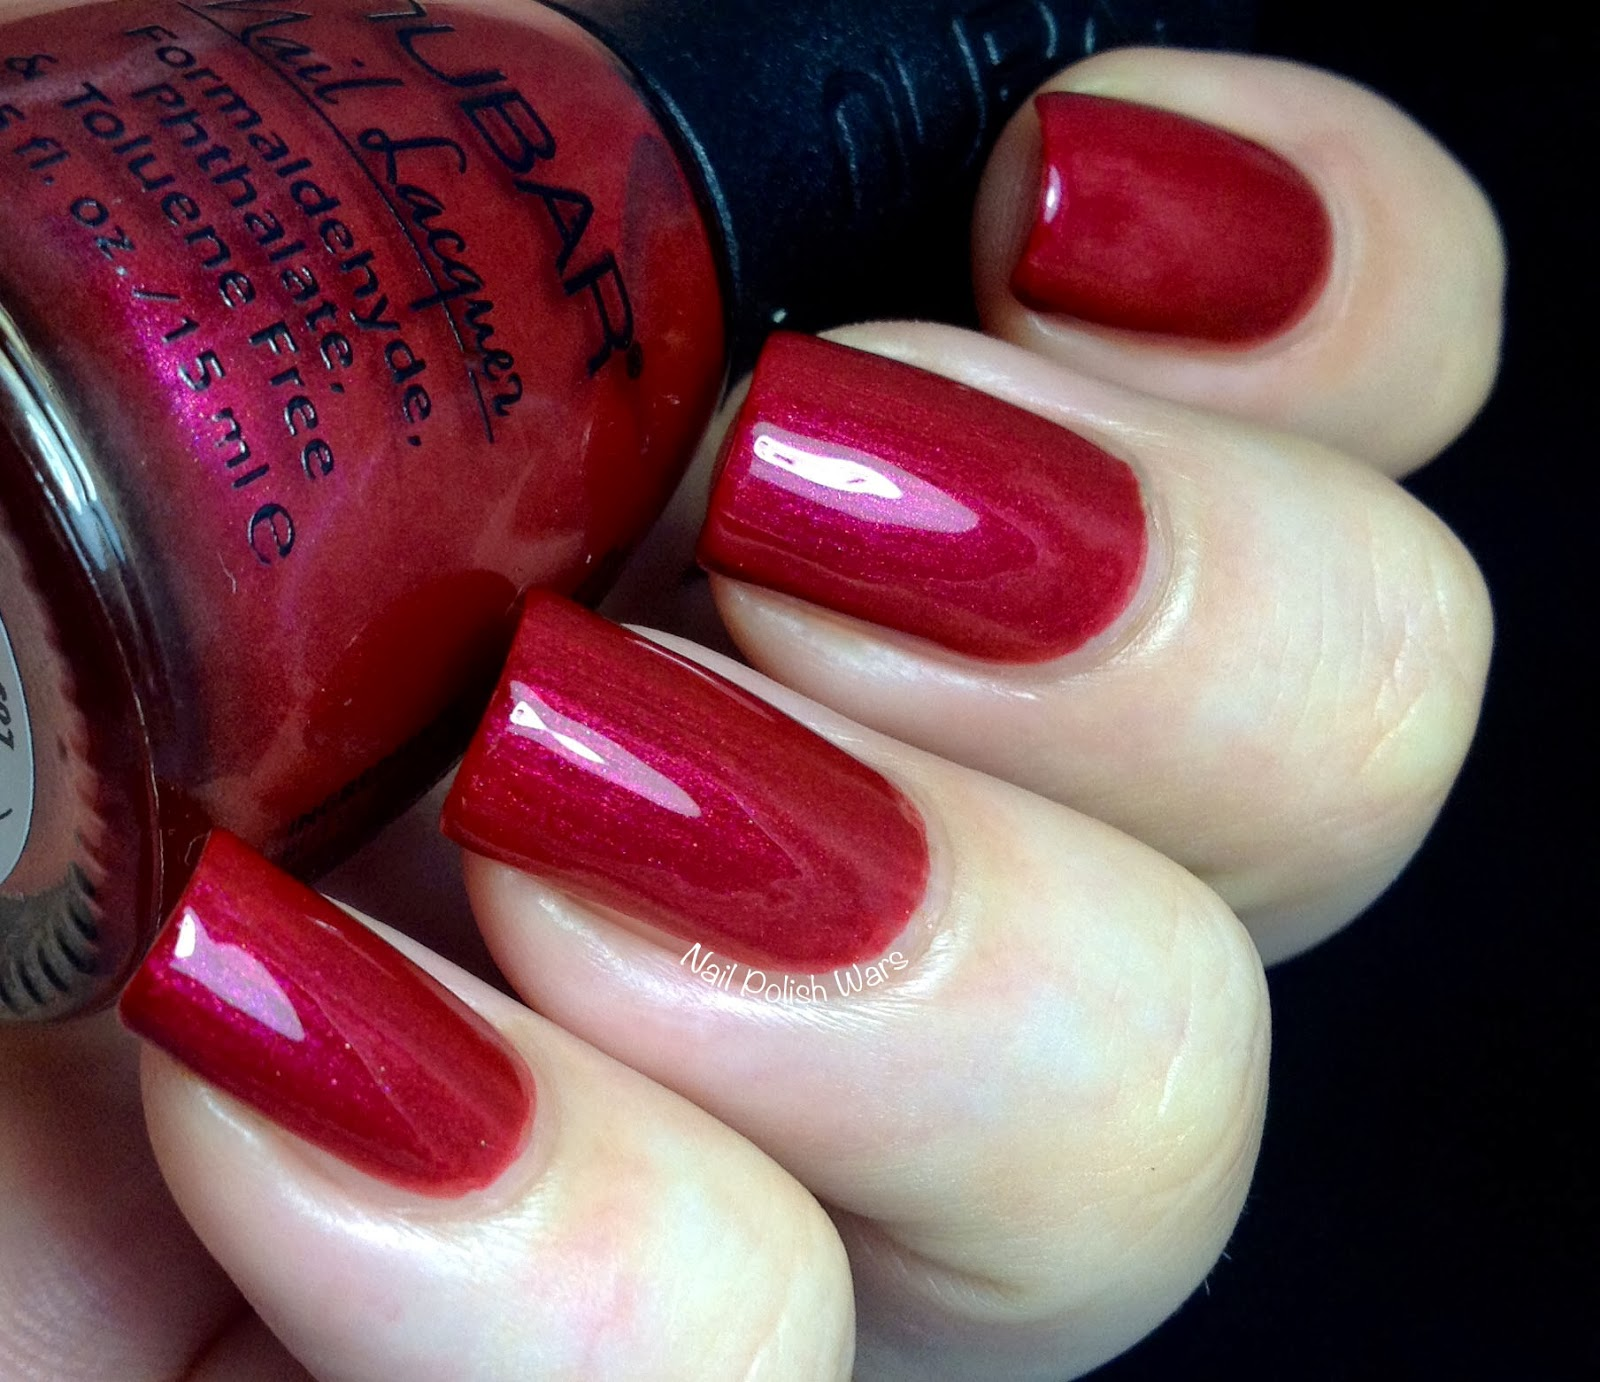 Nail Polish Wars Nubar Wild West Collection Swatch Review